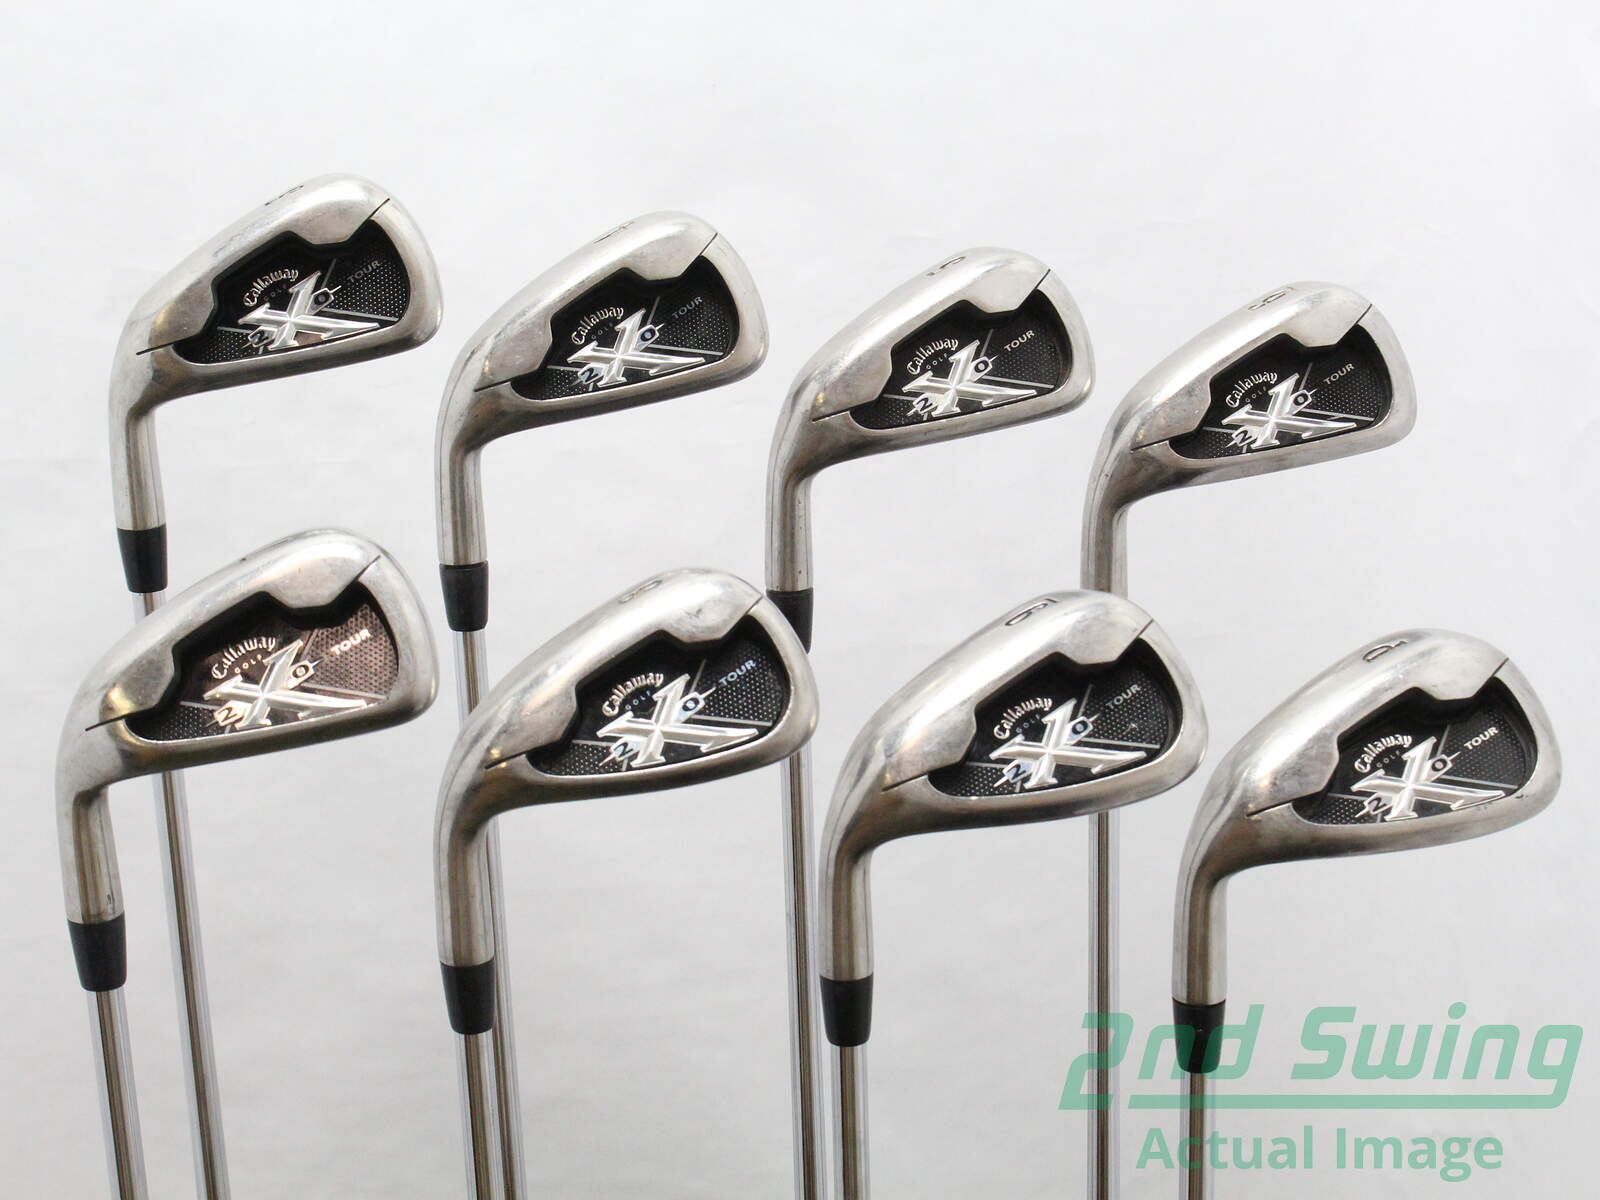 Used Callaway X 22 Tour Iron Set 3 Pw Project X Flighted 60 Steel